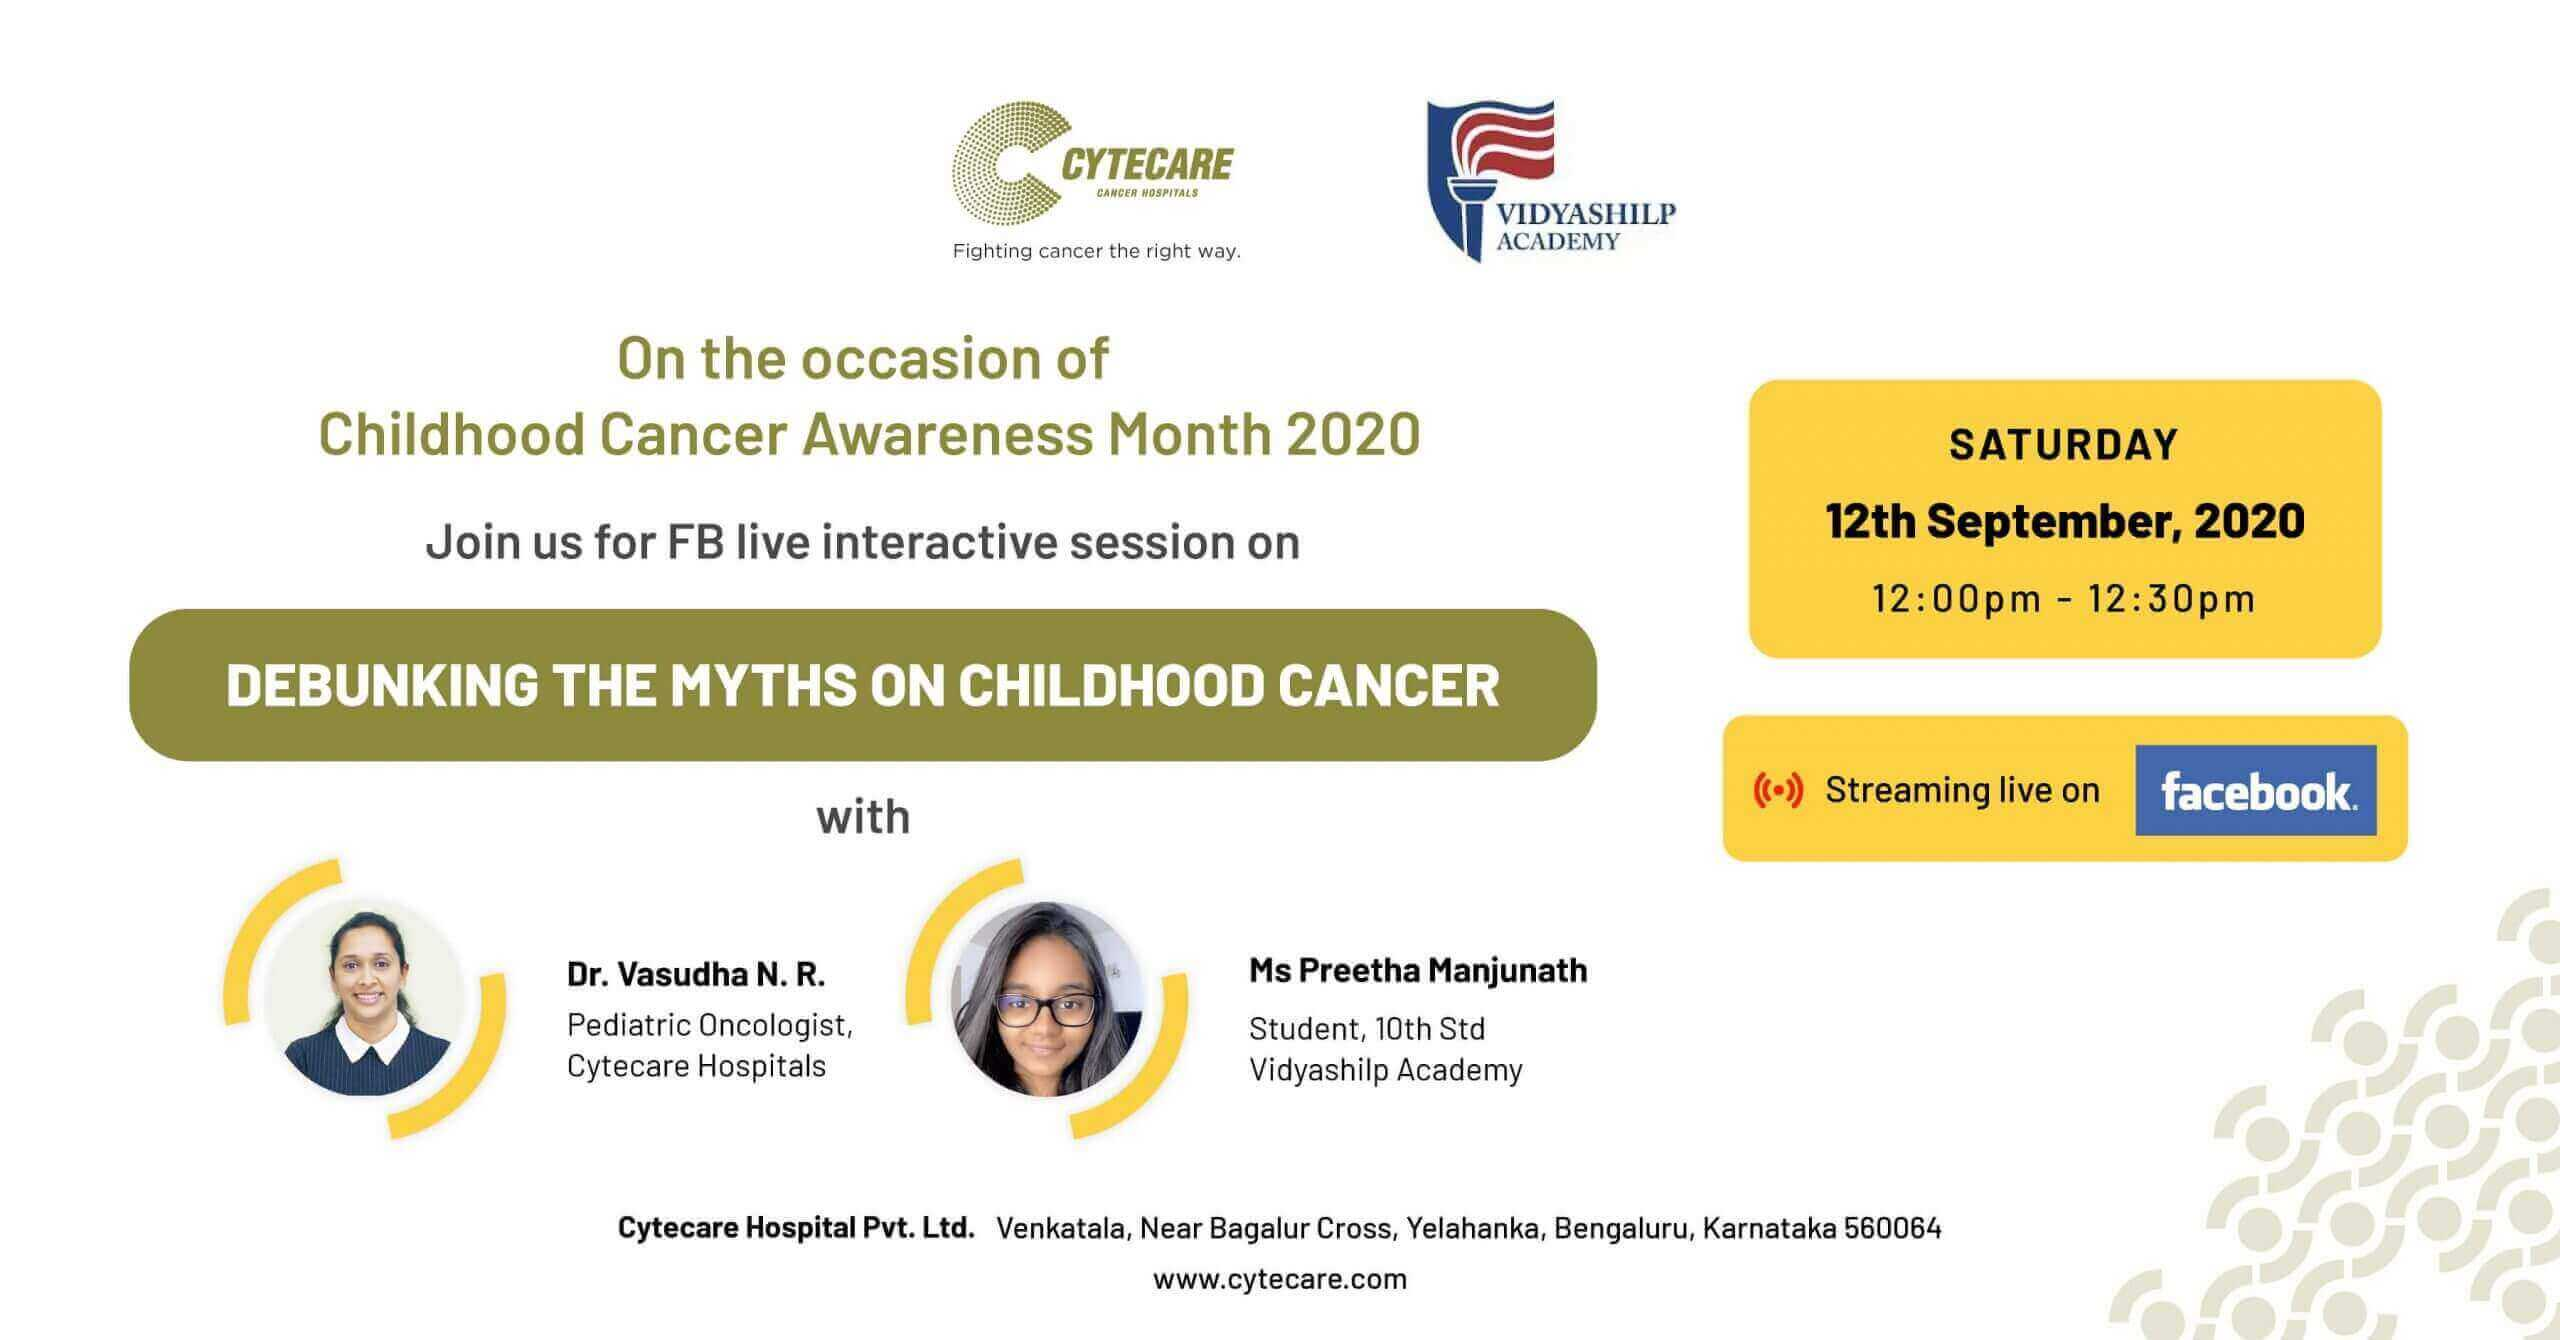 Debunking The Myths on Childhood Cancer with Cytecare